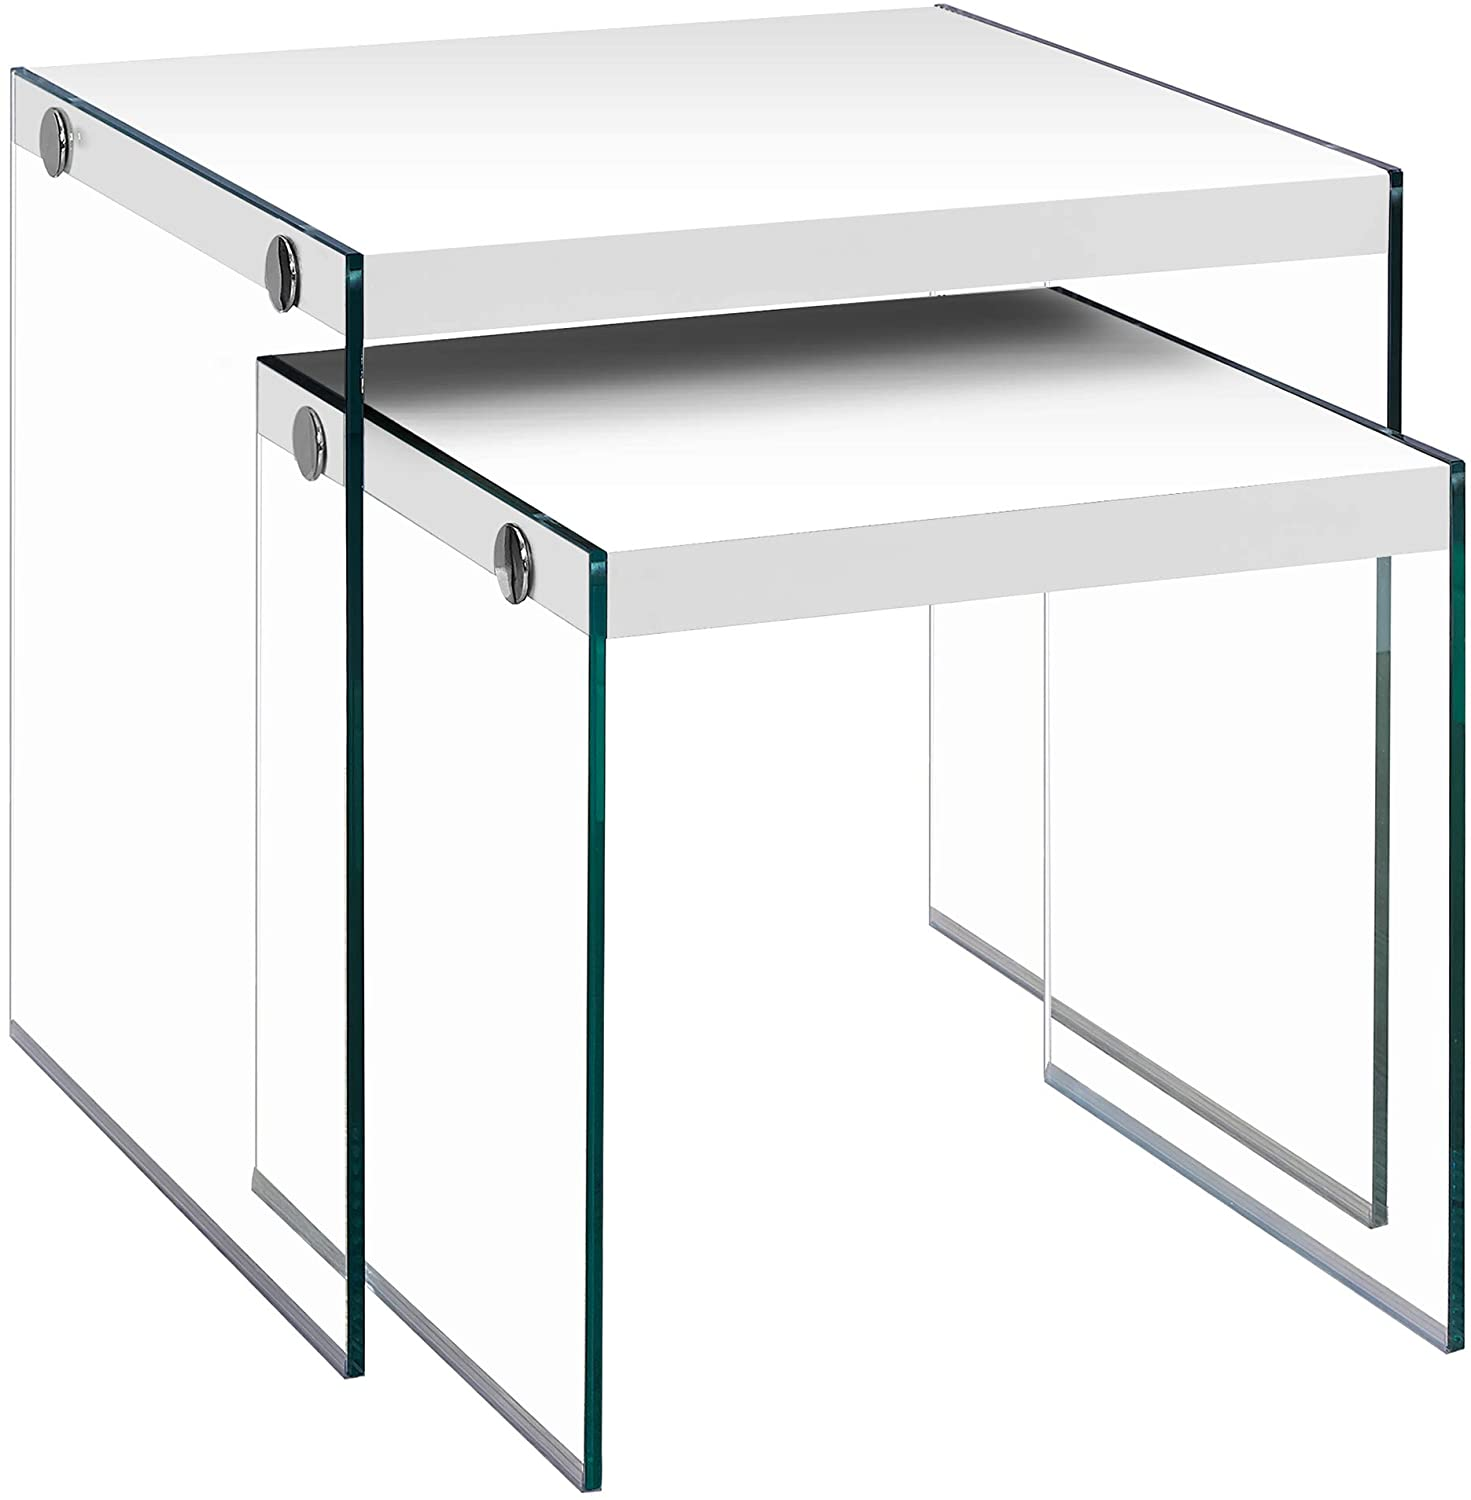 Monarch Specialties ,Nesting Table, Tempered Glass, Glossy White: Furniture & Decor